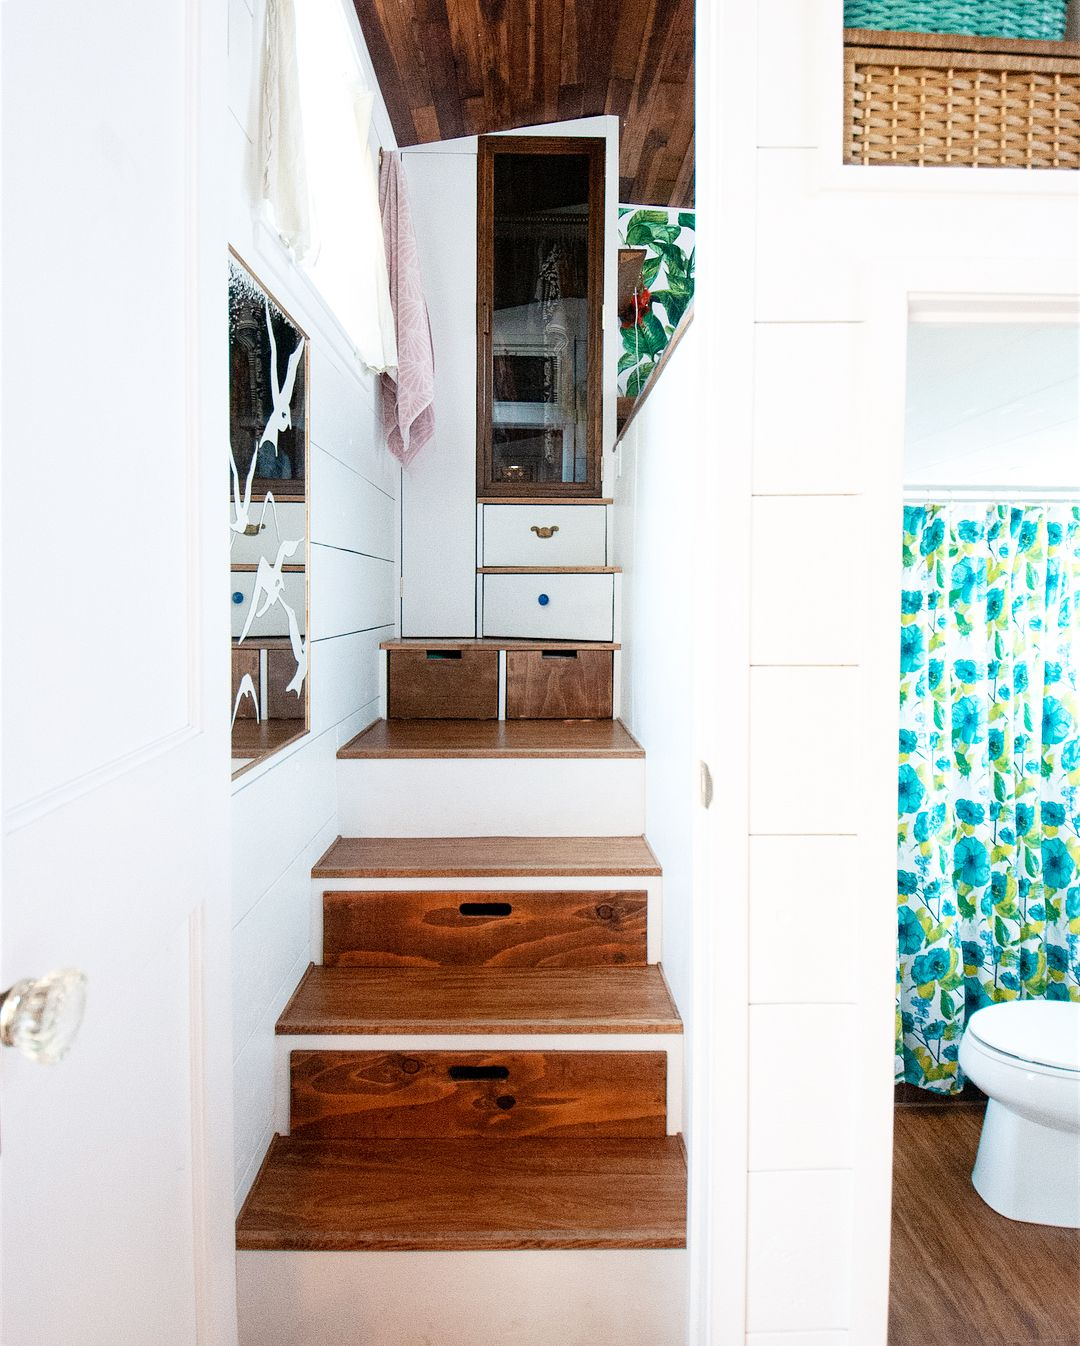 tiny house her tiny home 13 - Single mom built spectacular tiny home for herself and her daughter